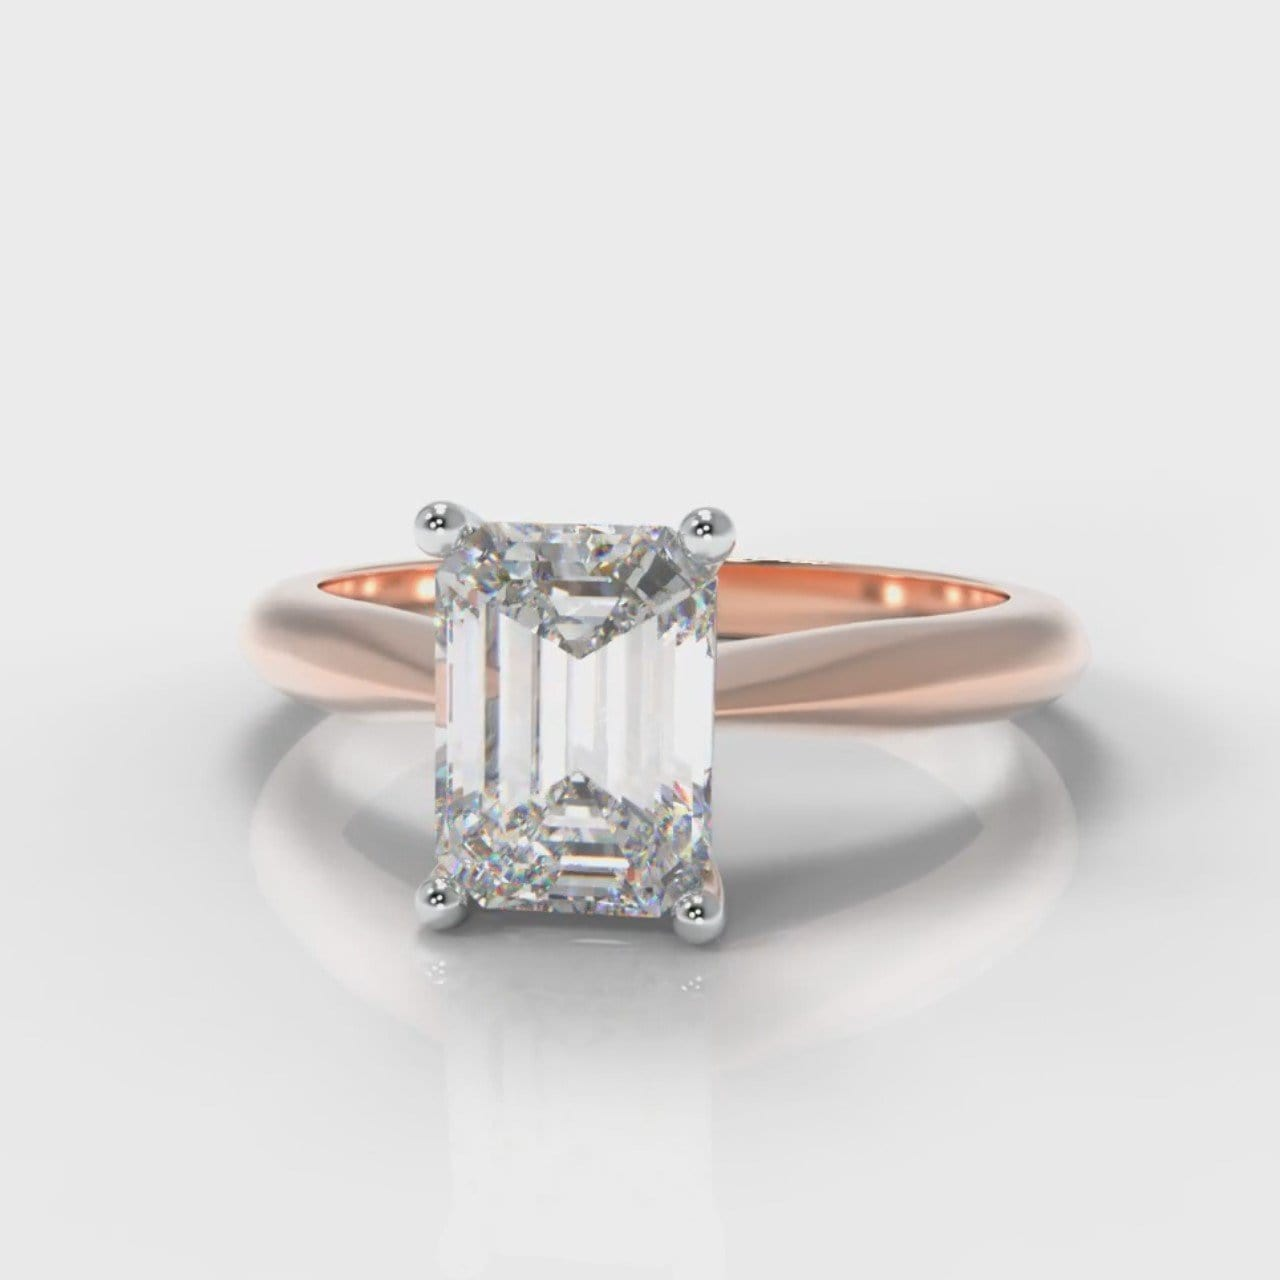 Carrée Solitaire Emerald Cut Diamond Engagement Ring - Rose Gold